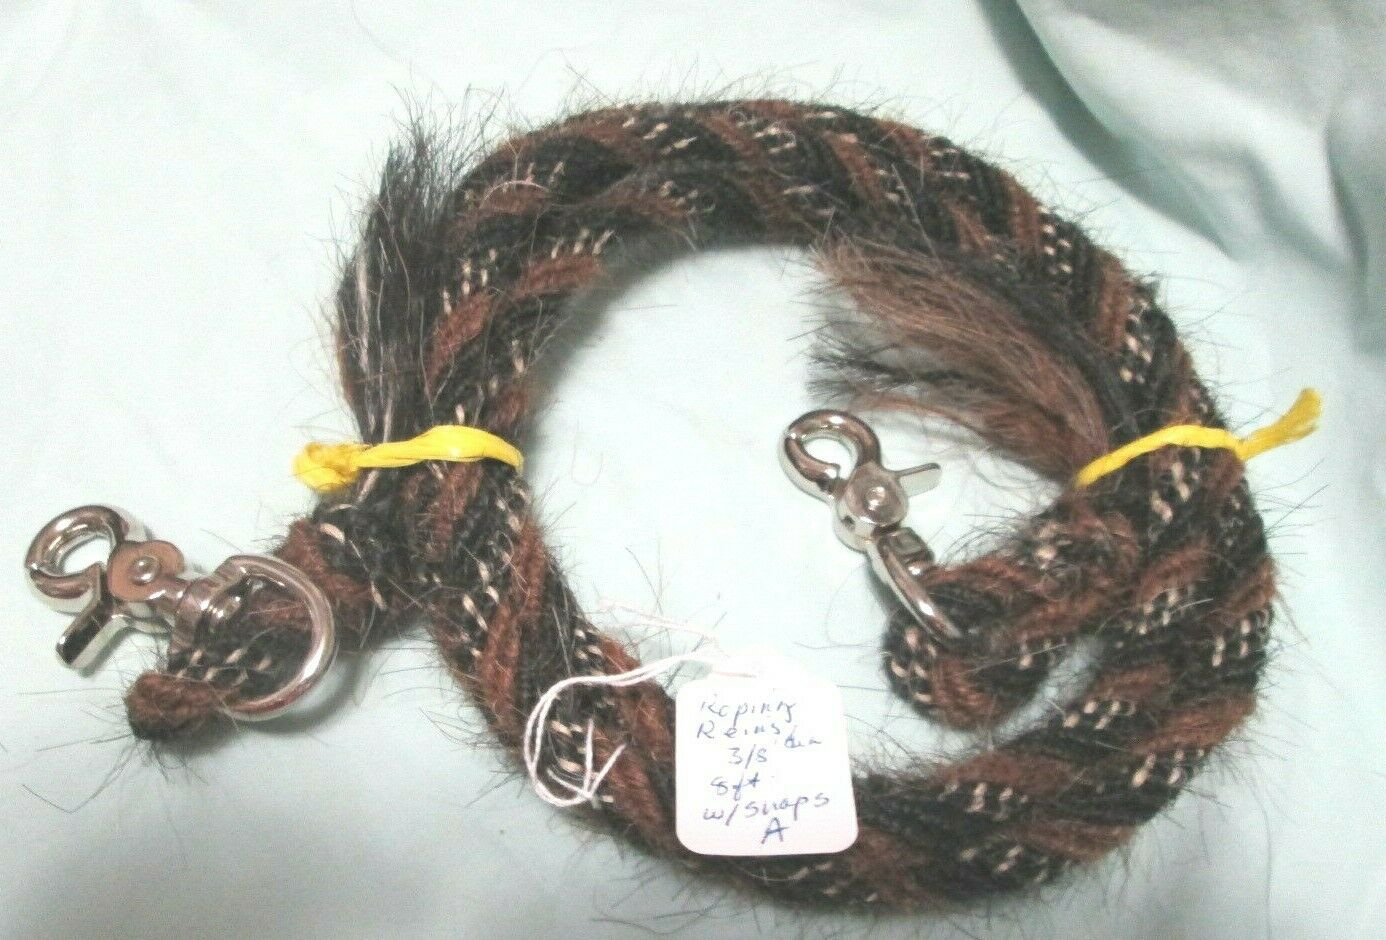 uomoe cavallo Hair Roping Reins 8 feet 38 diameter, Pattern A with snaps